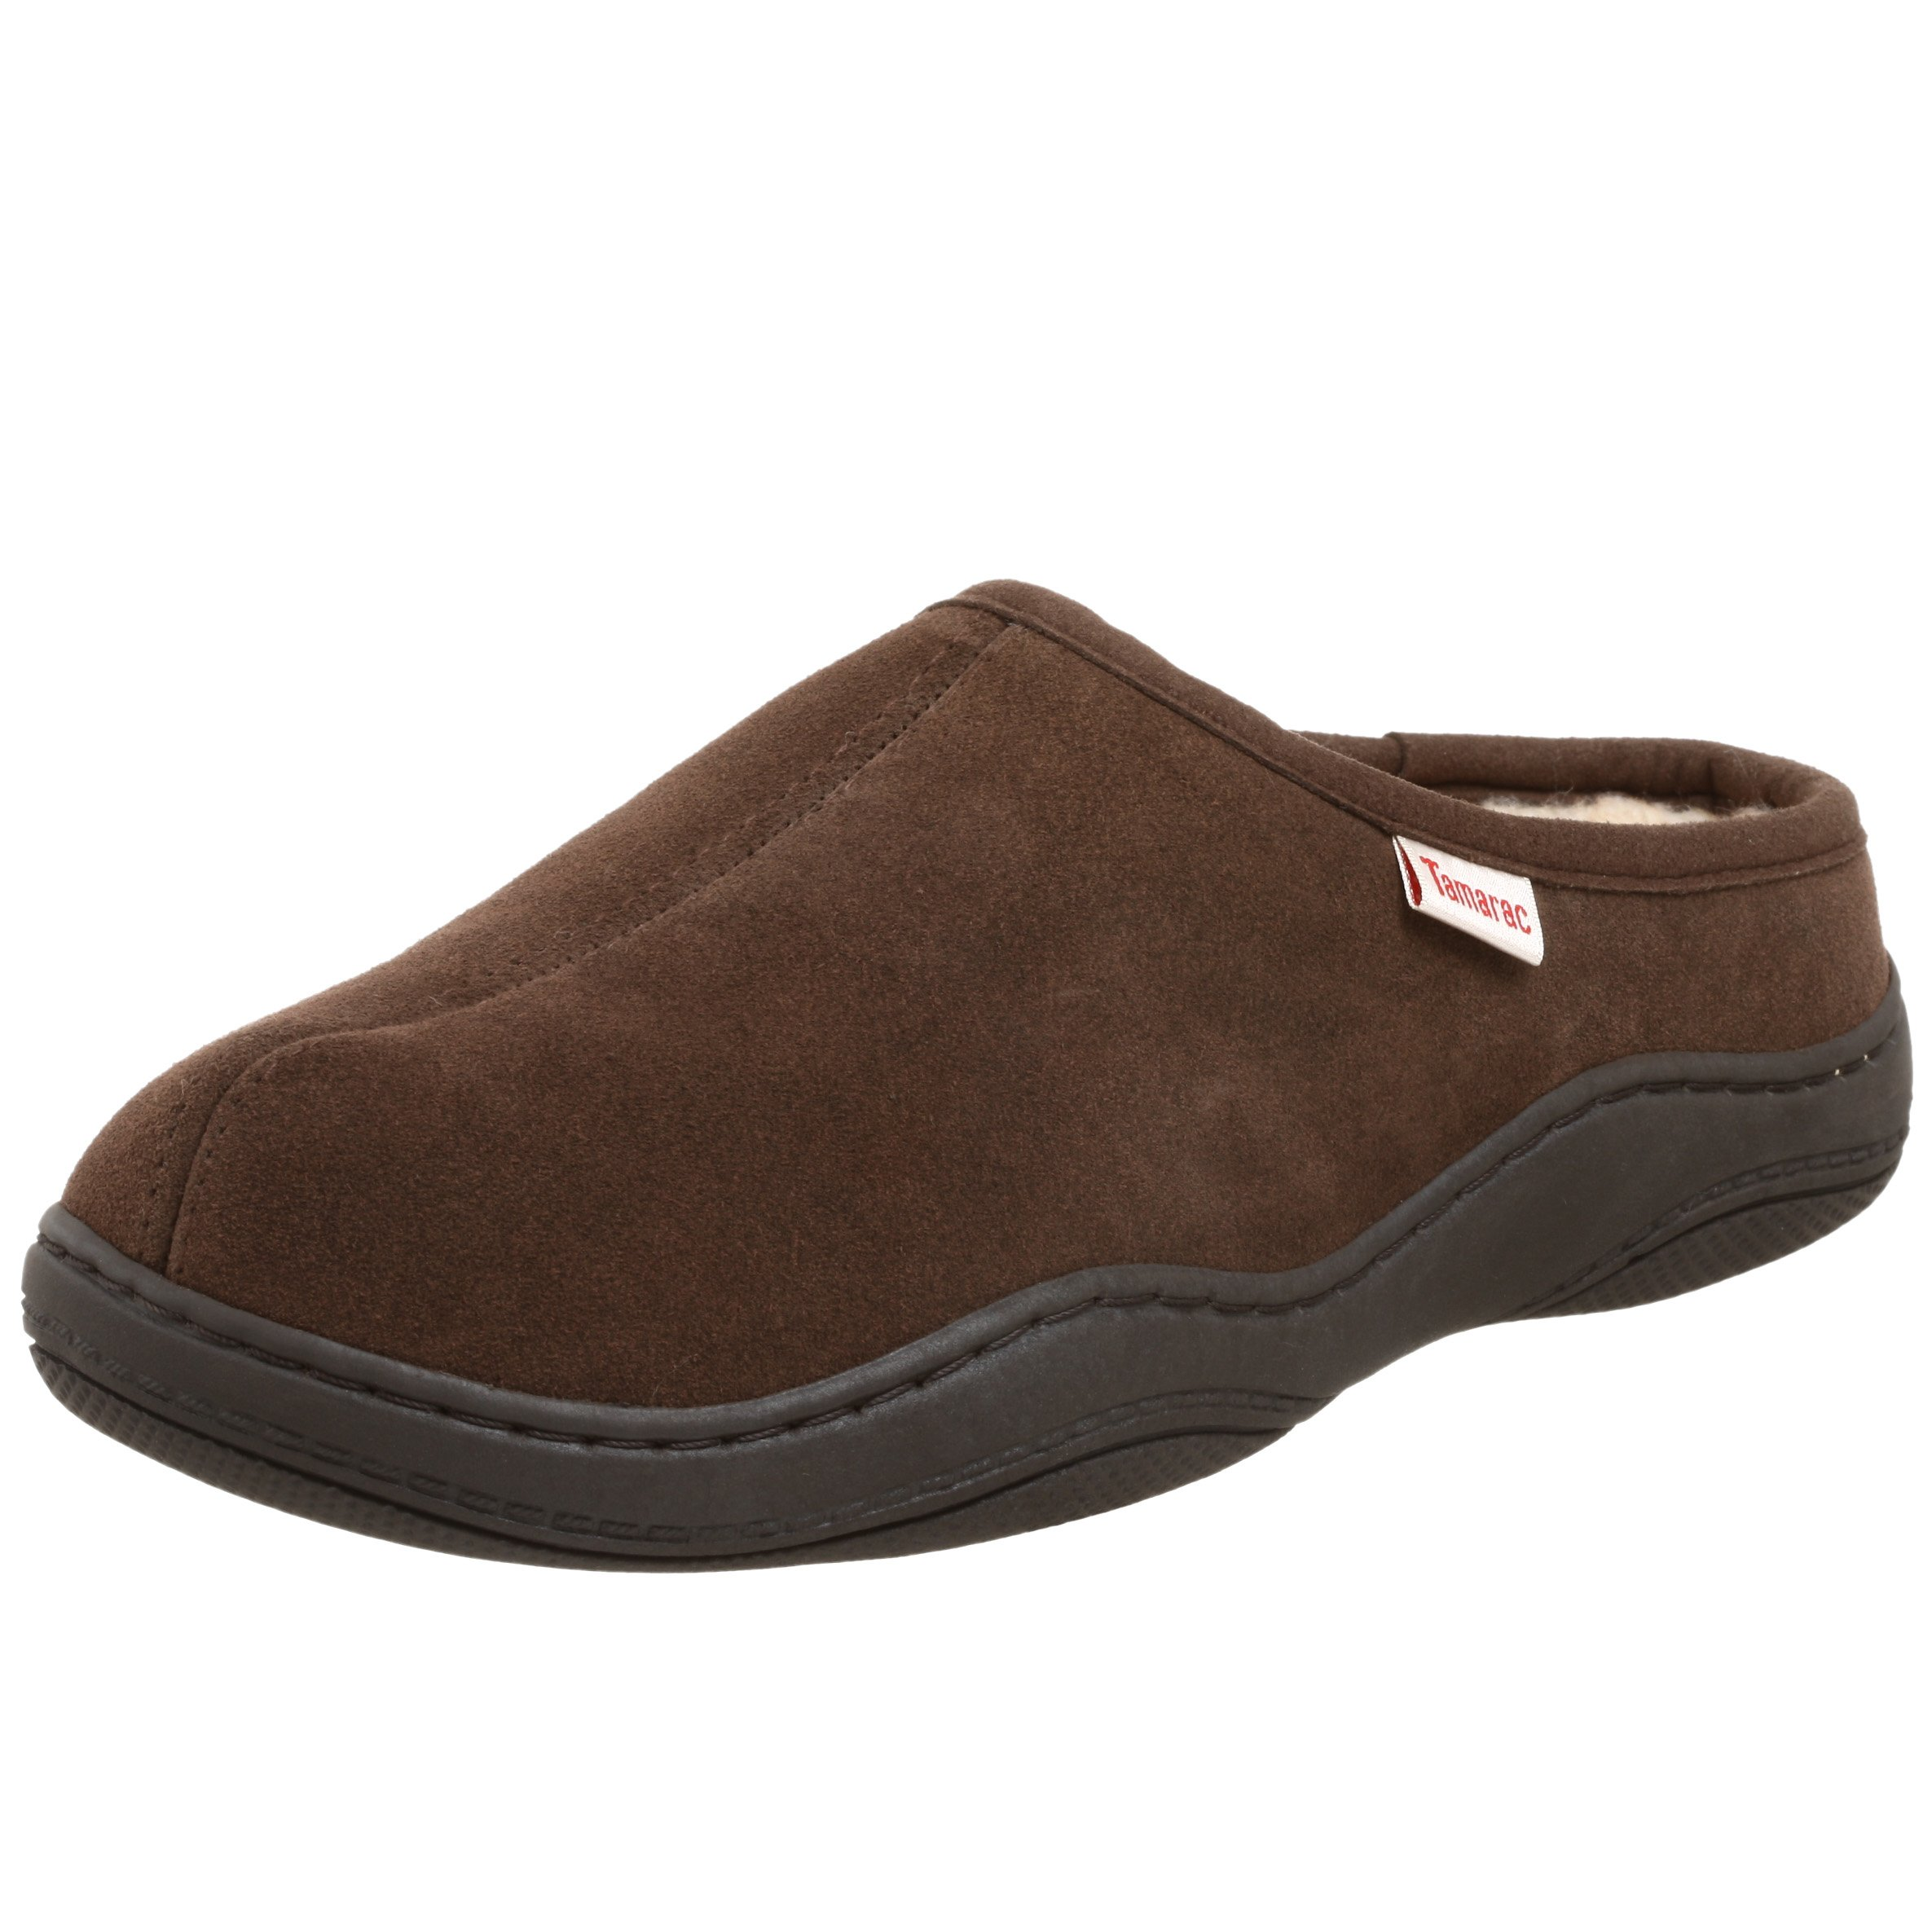 Tamarac by Slippers International Men's Scuffy 8117 Clog Slipper,Rootbeer,11 M US